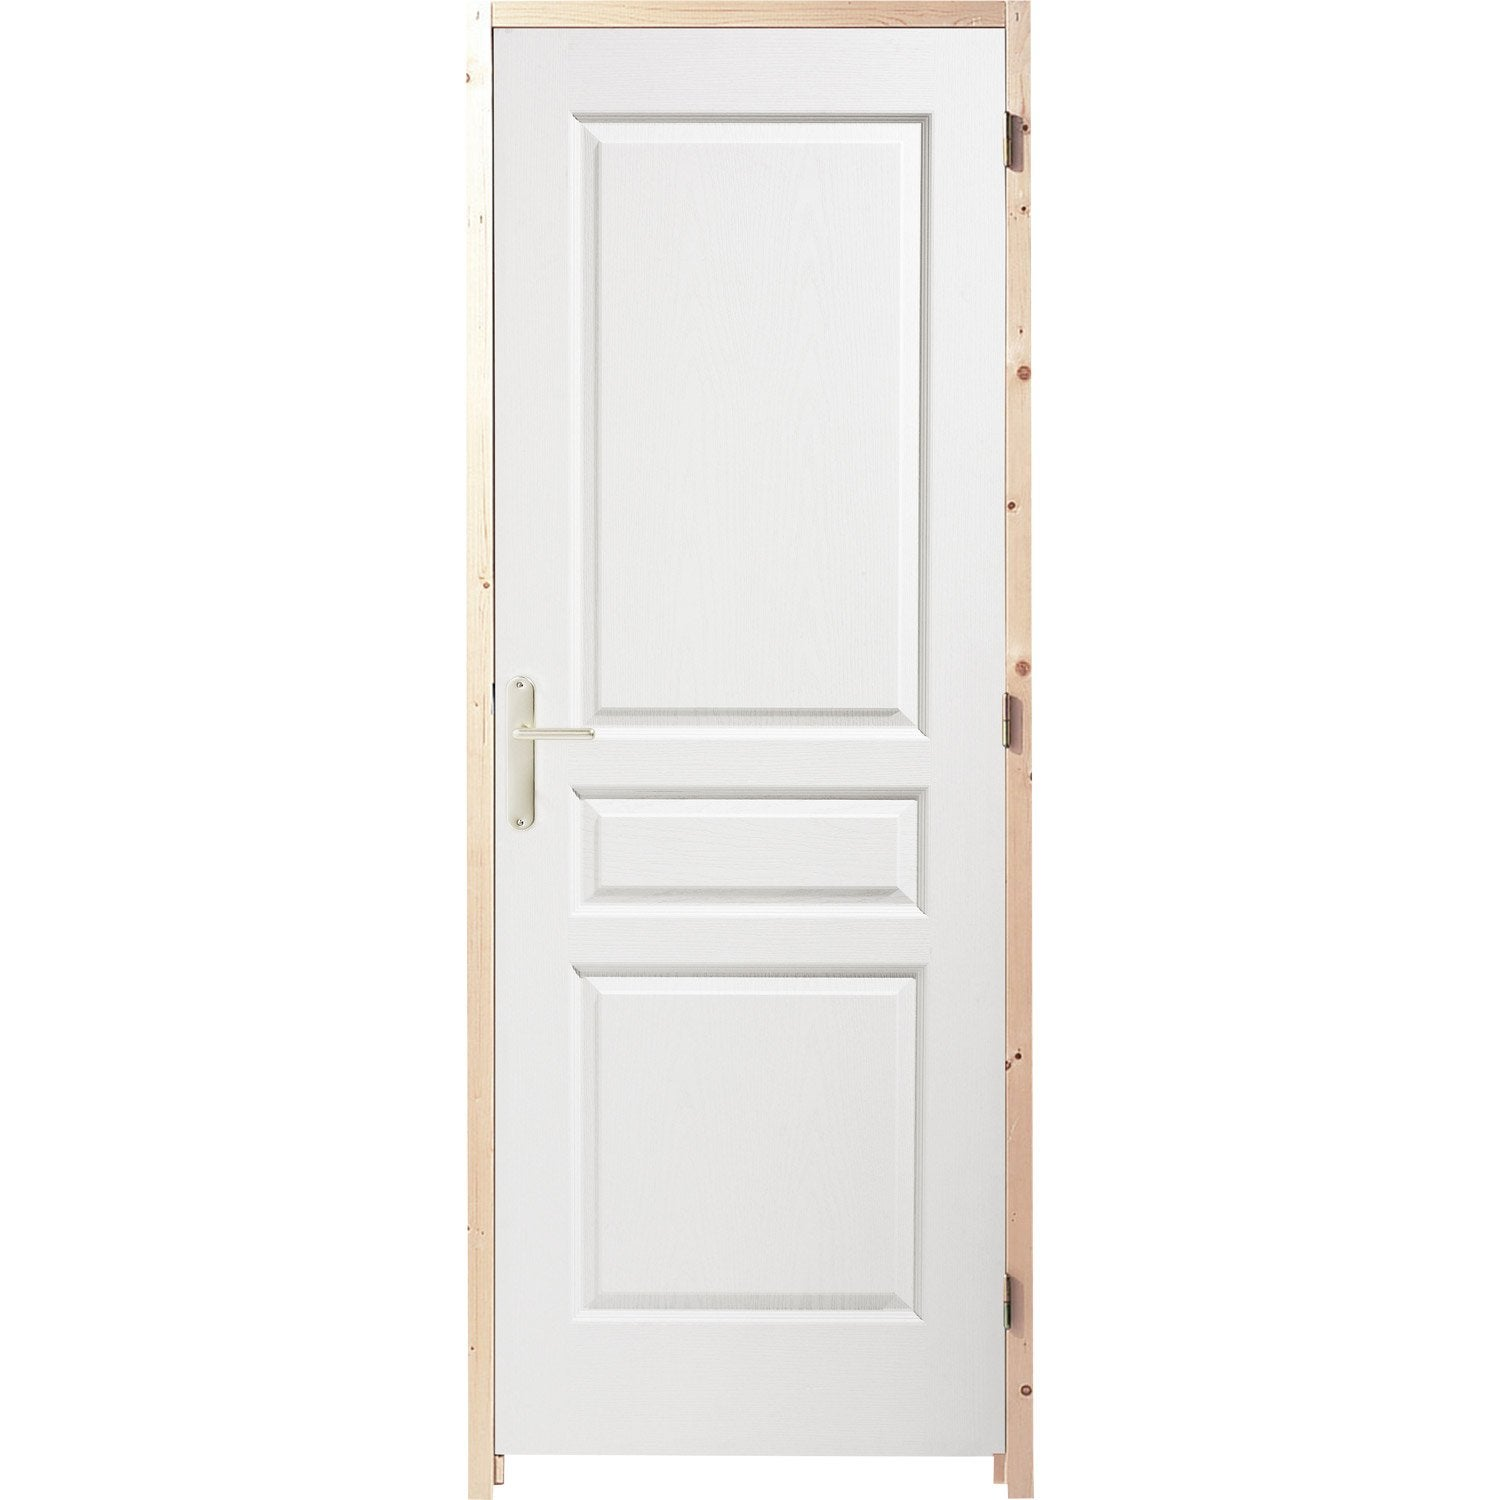 Bloc porte acoustique postform x cm leroy merlin for Bloc porte cf 1h